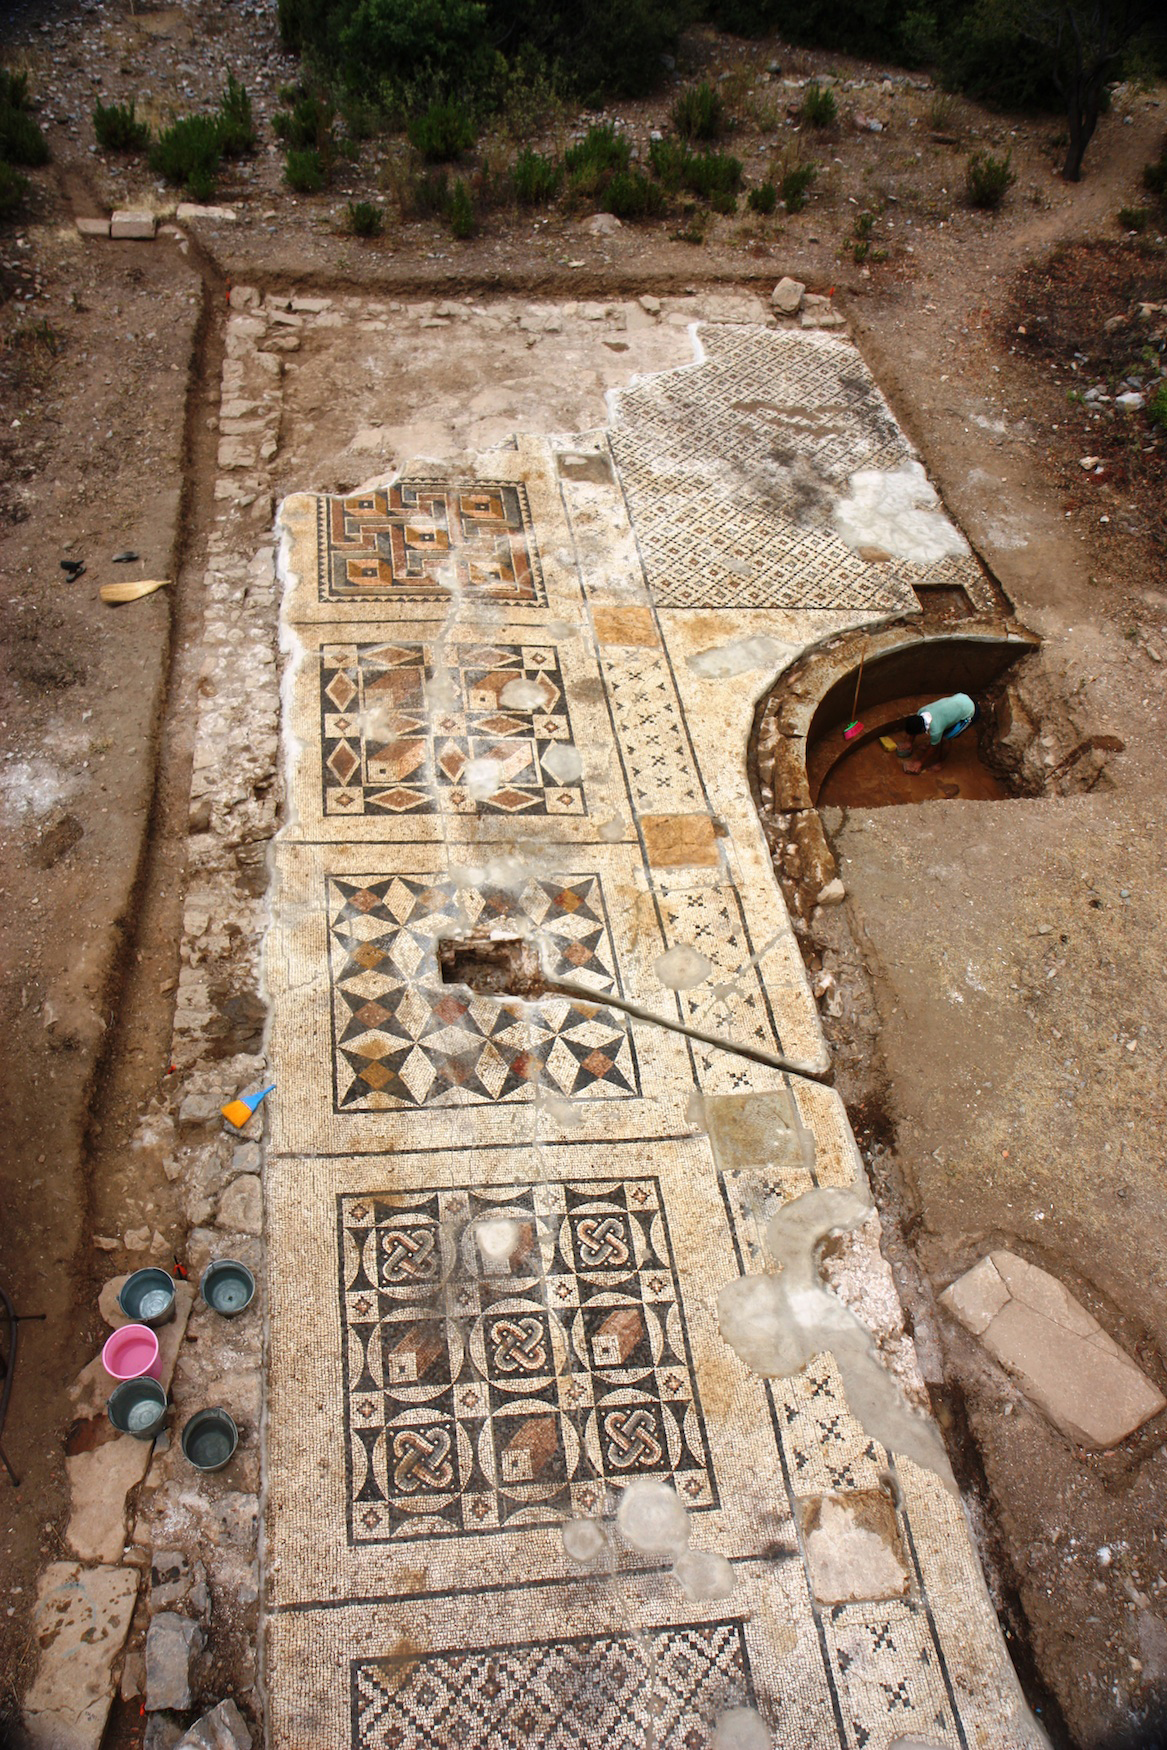 An overhead perspective of the roughly 40 percent of the Roman mosaic uncovered so far. The mosaic measures approximate 25 meters by seven meters and served as the forecourt for the adjacent large bath. Researchers expect its total area to be about 1,600